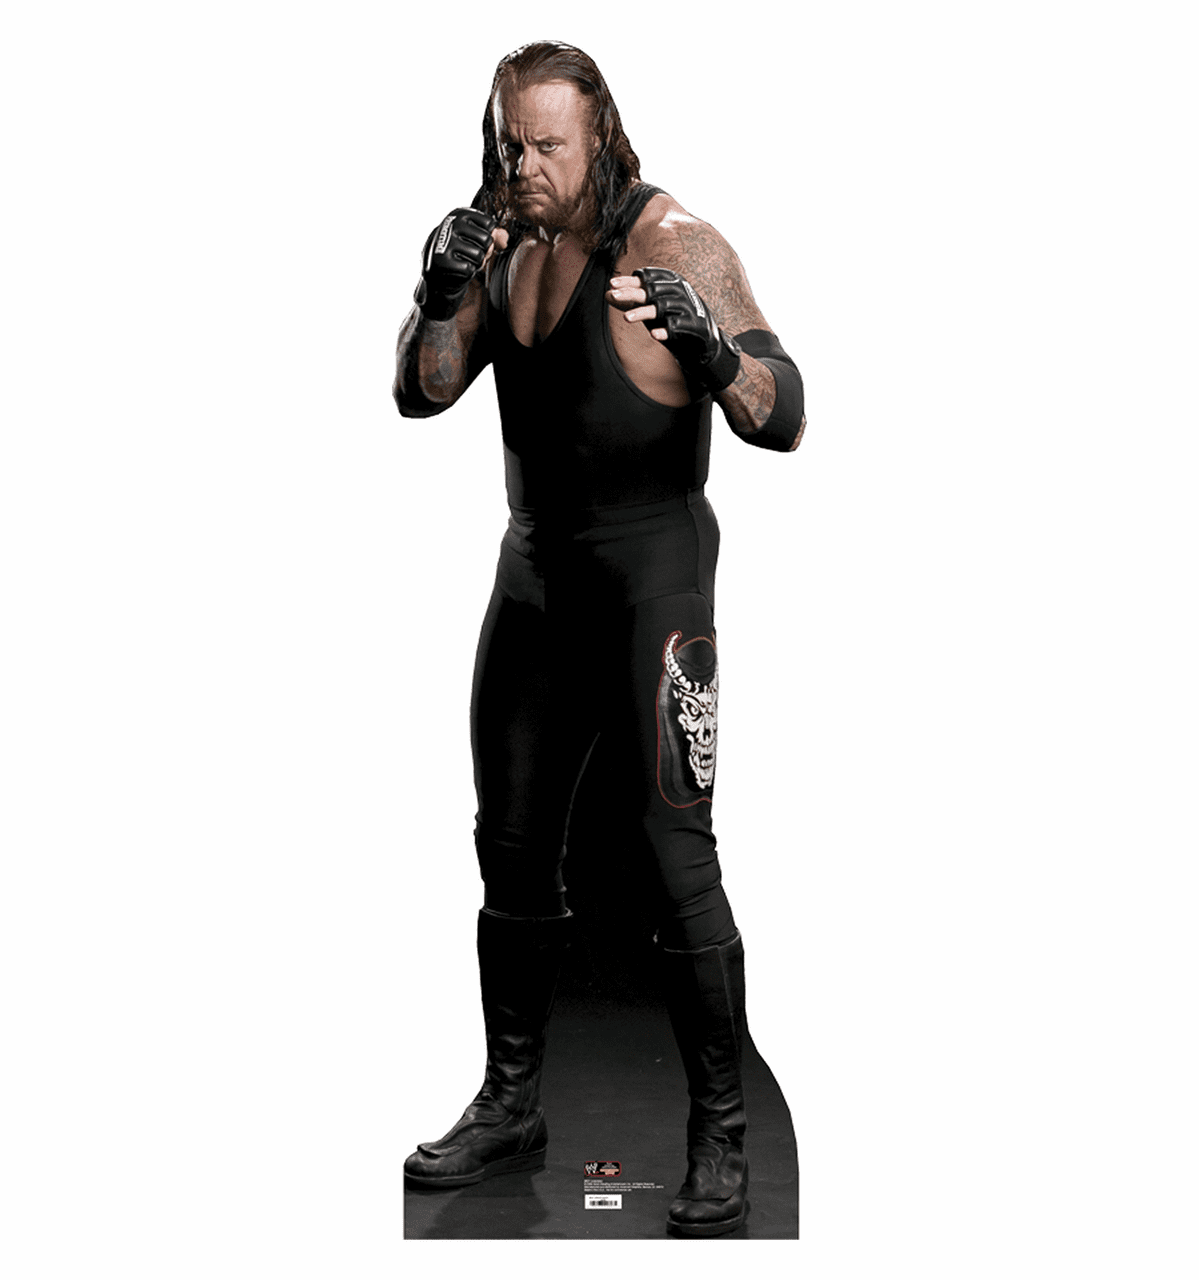 Life Size WWE Standees